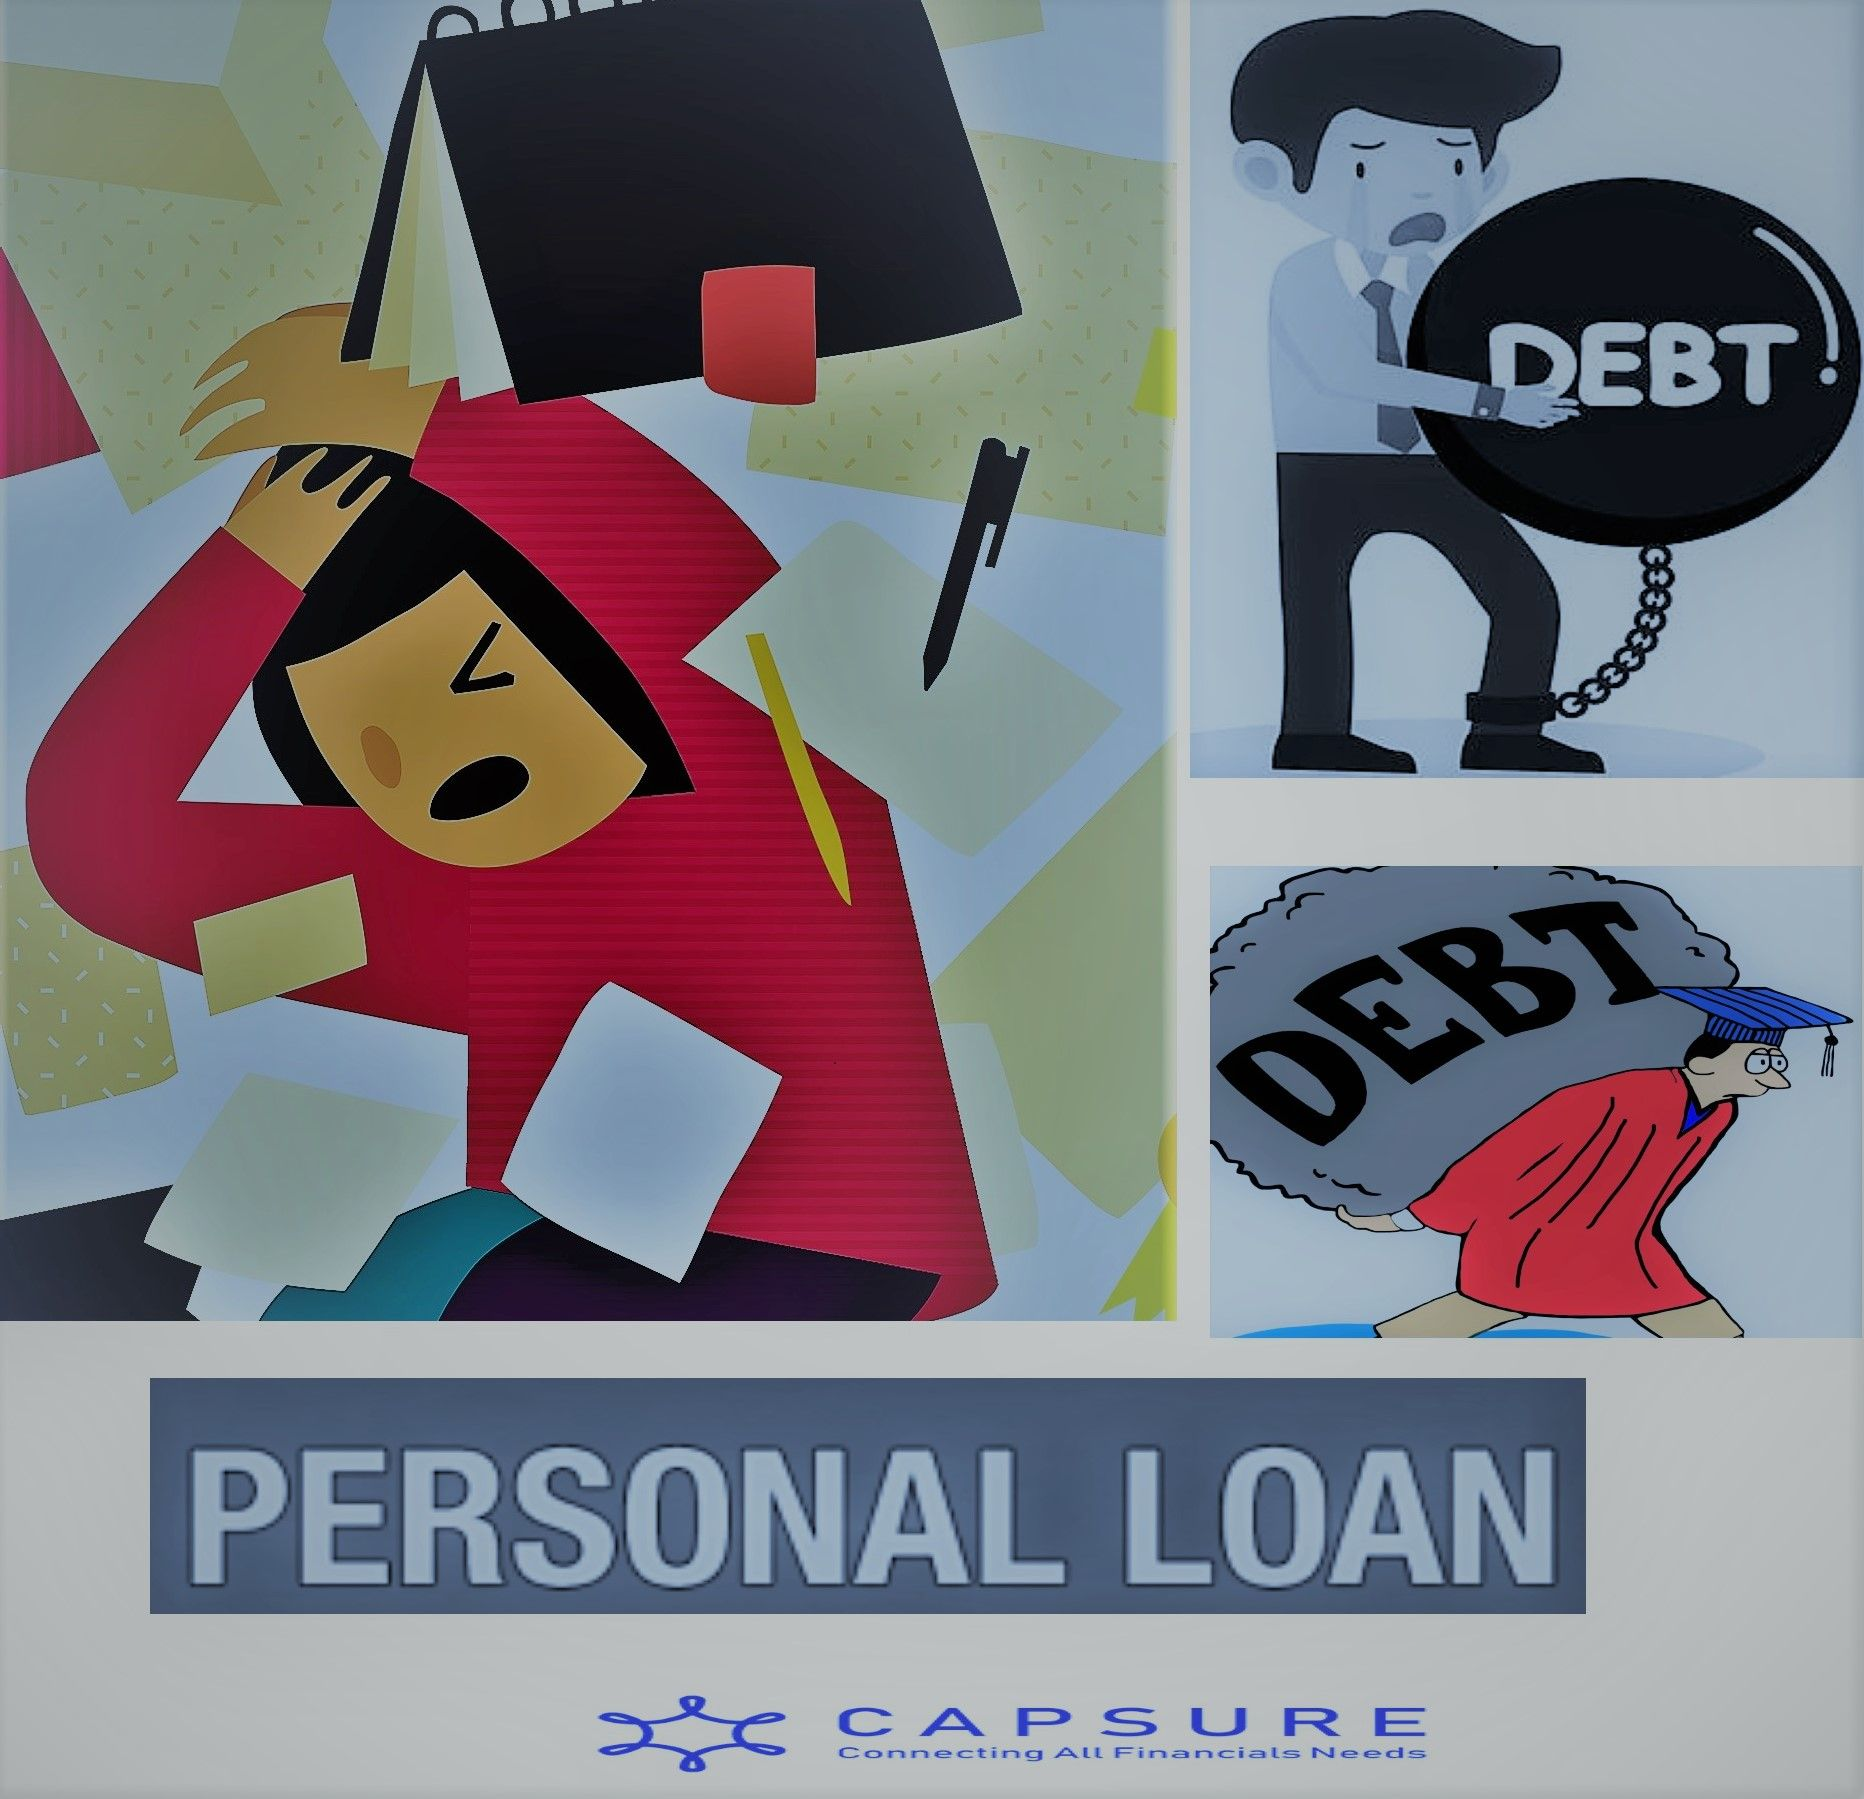 Are You Looking For Personal Loan In 2020 Personal Loans Person Loan